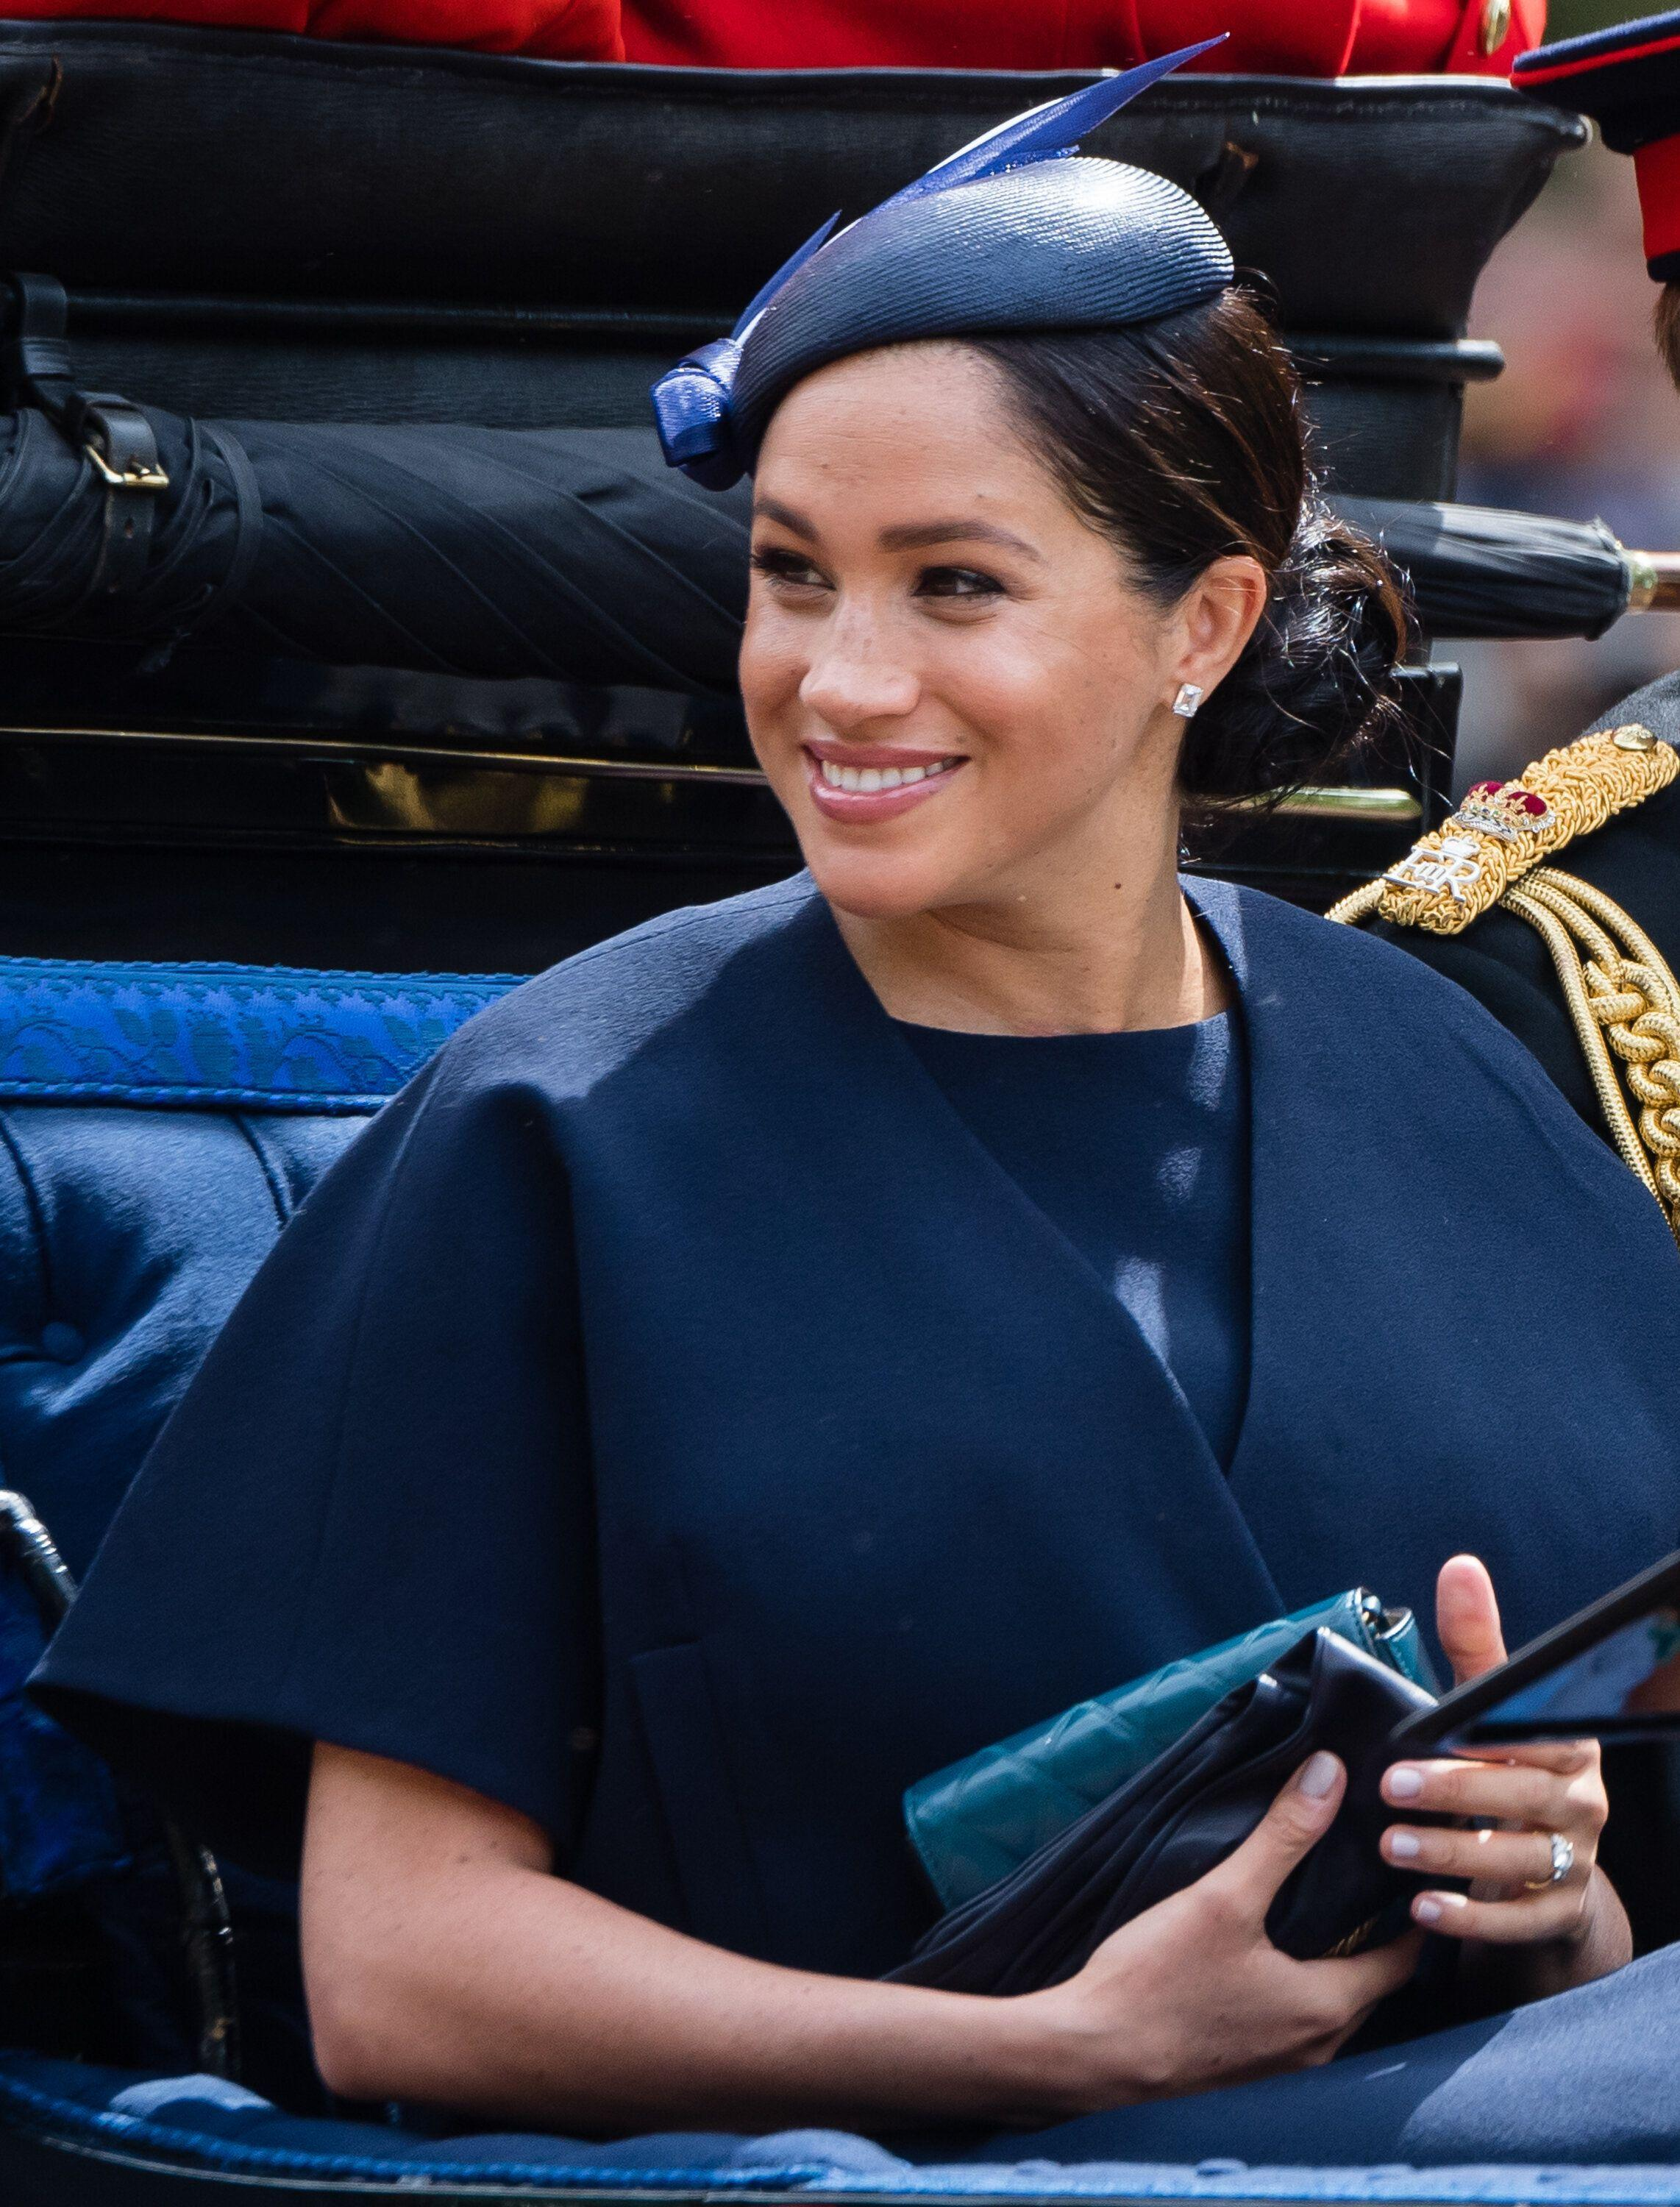 The Duchess of Sussex looked stylish in Givenchy for the carriage ride back to Buckingham Palace [Image: Getty]